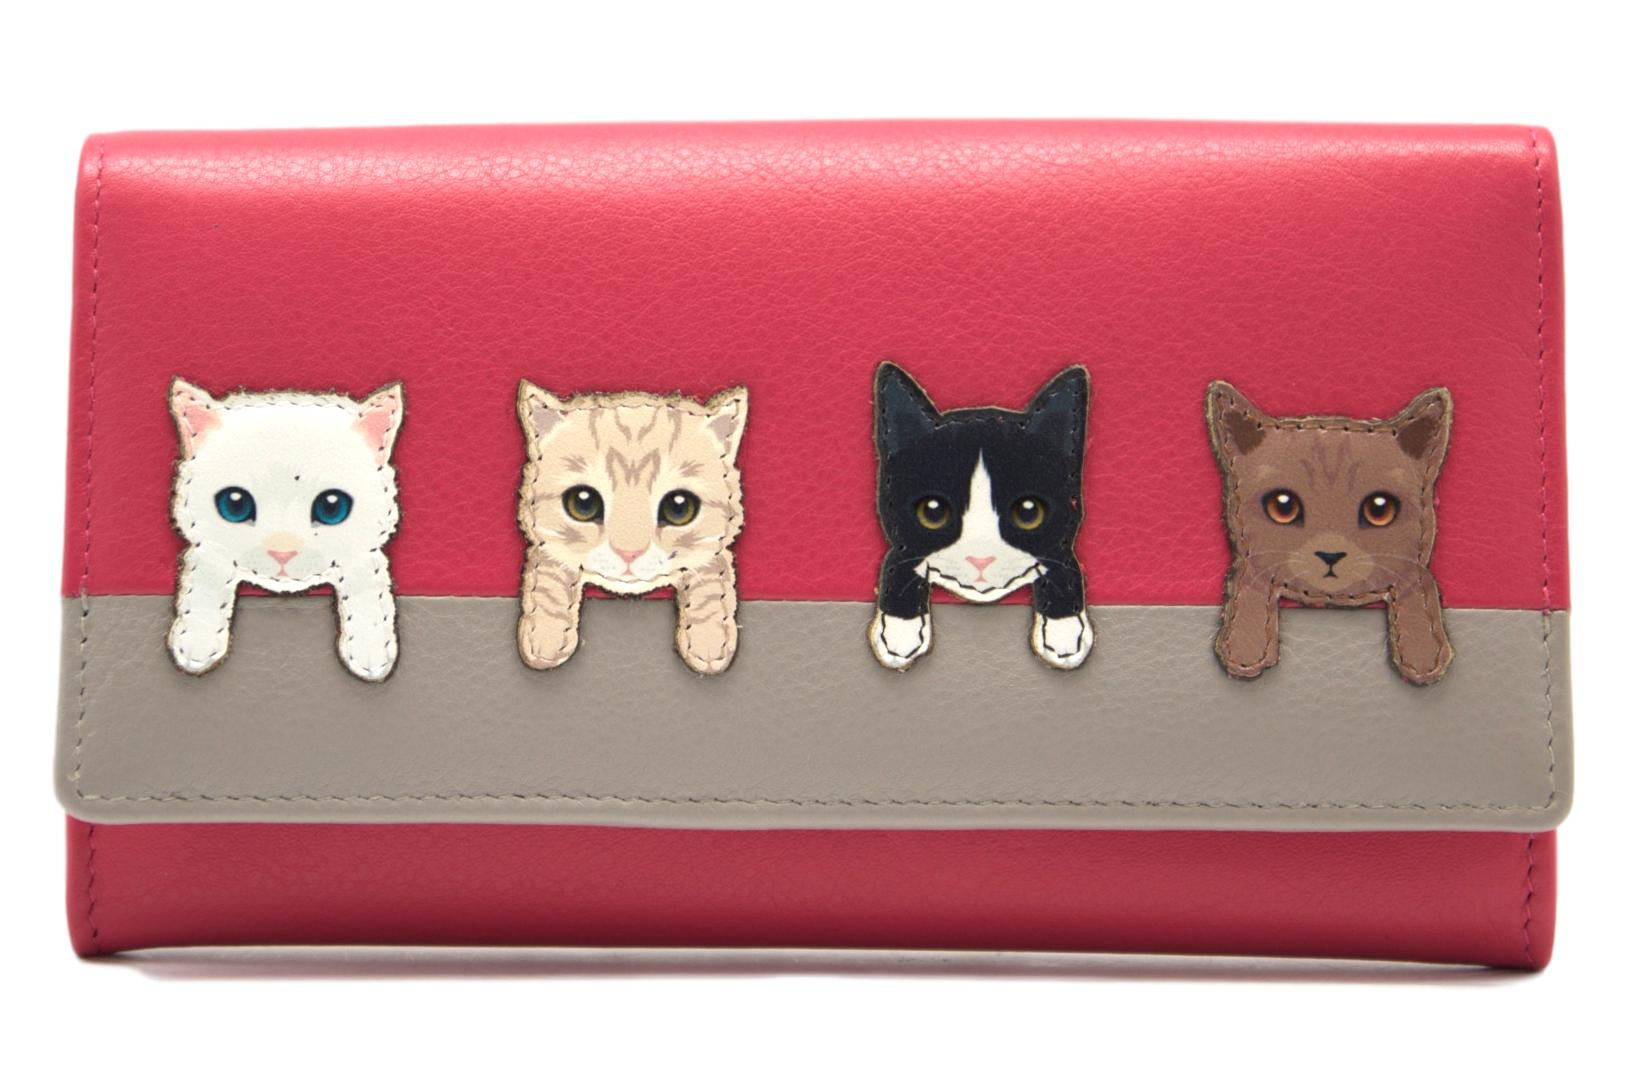 Mala Leather Pink Cats on Wall Purse